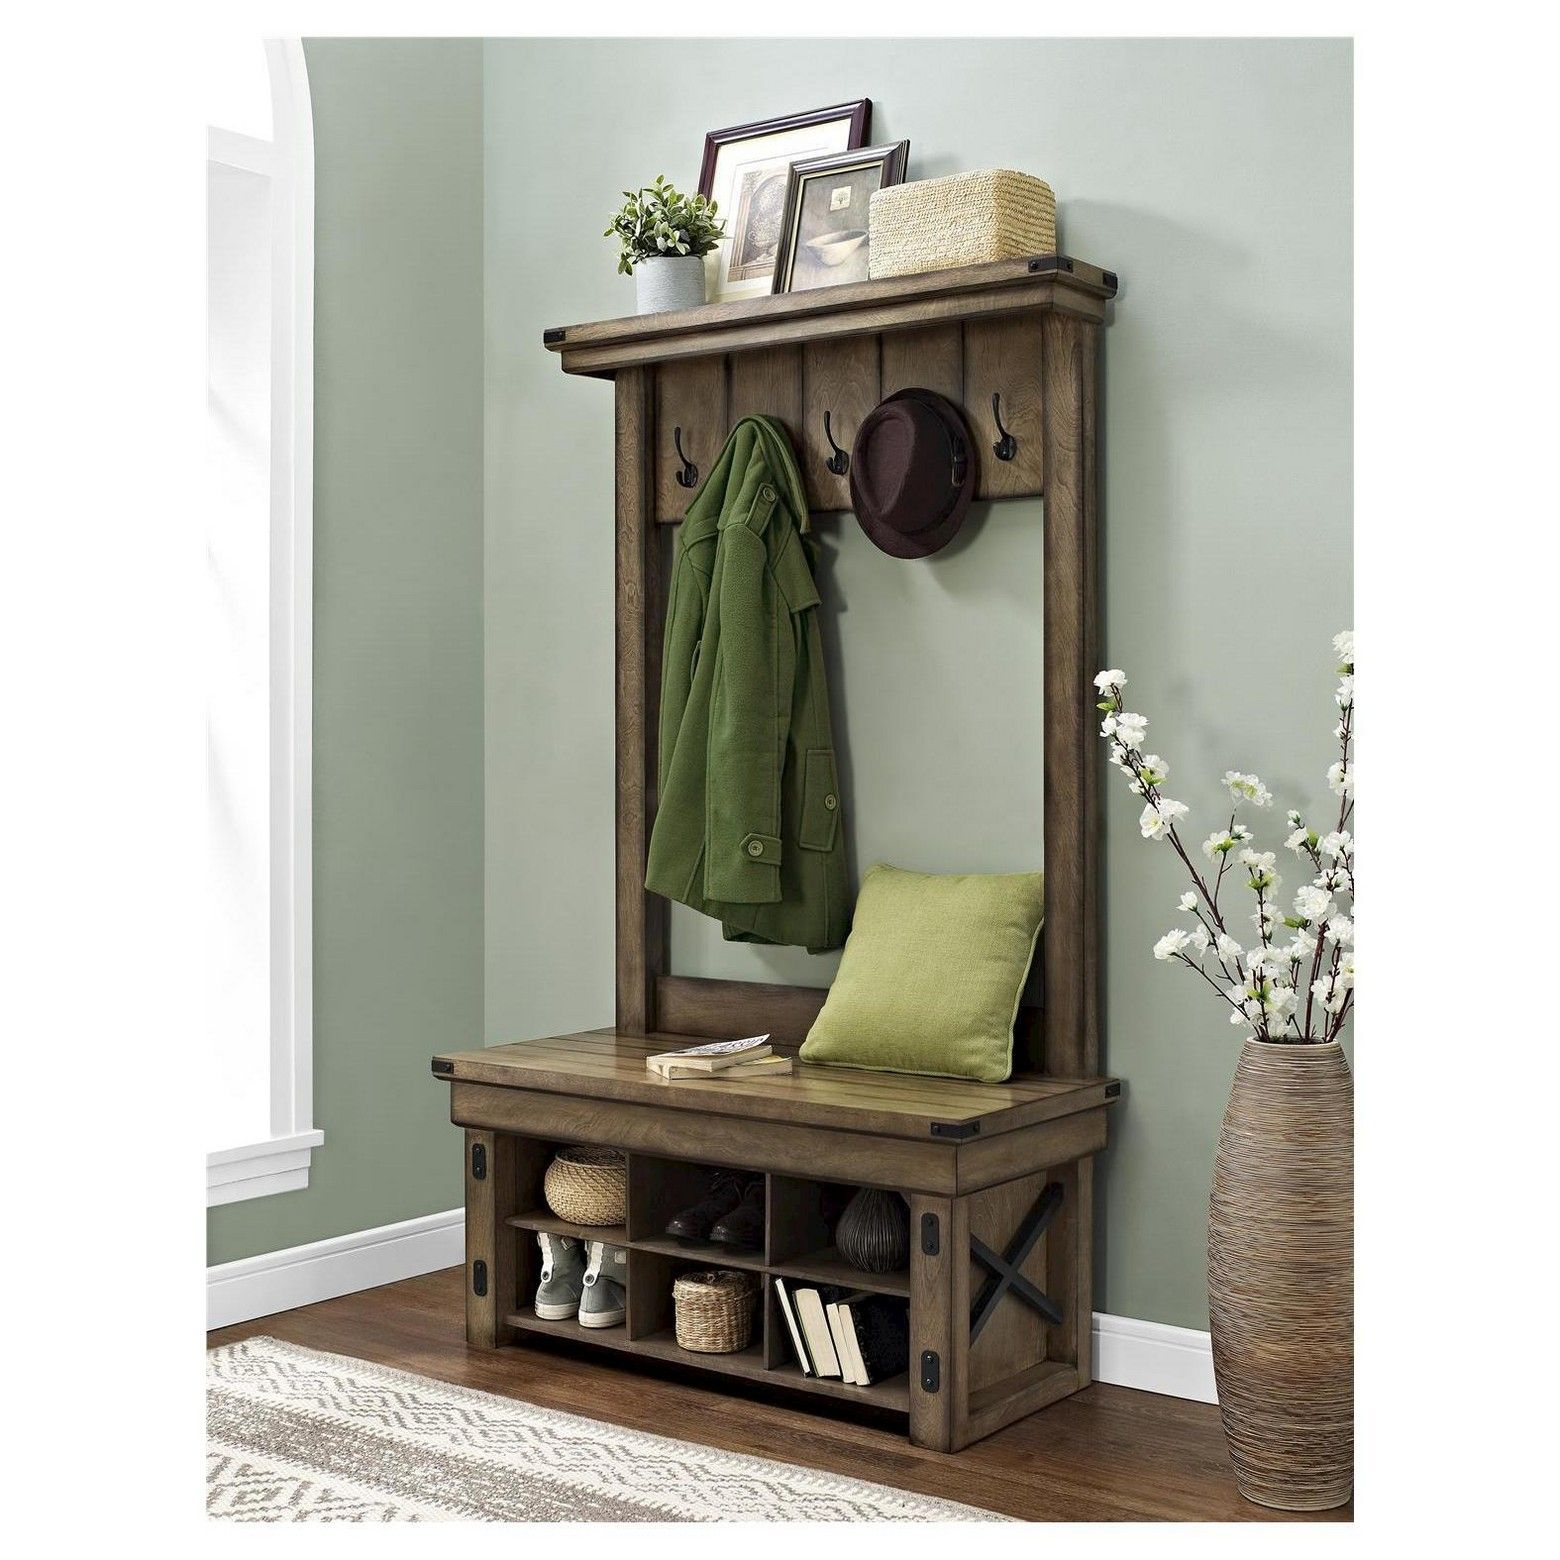 Elegant Rustic Hall Tree with Storage Bench